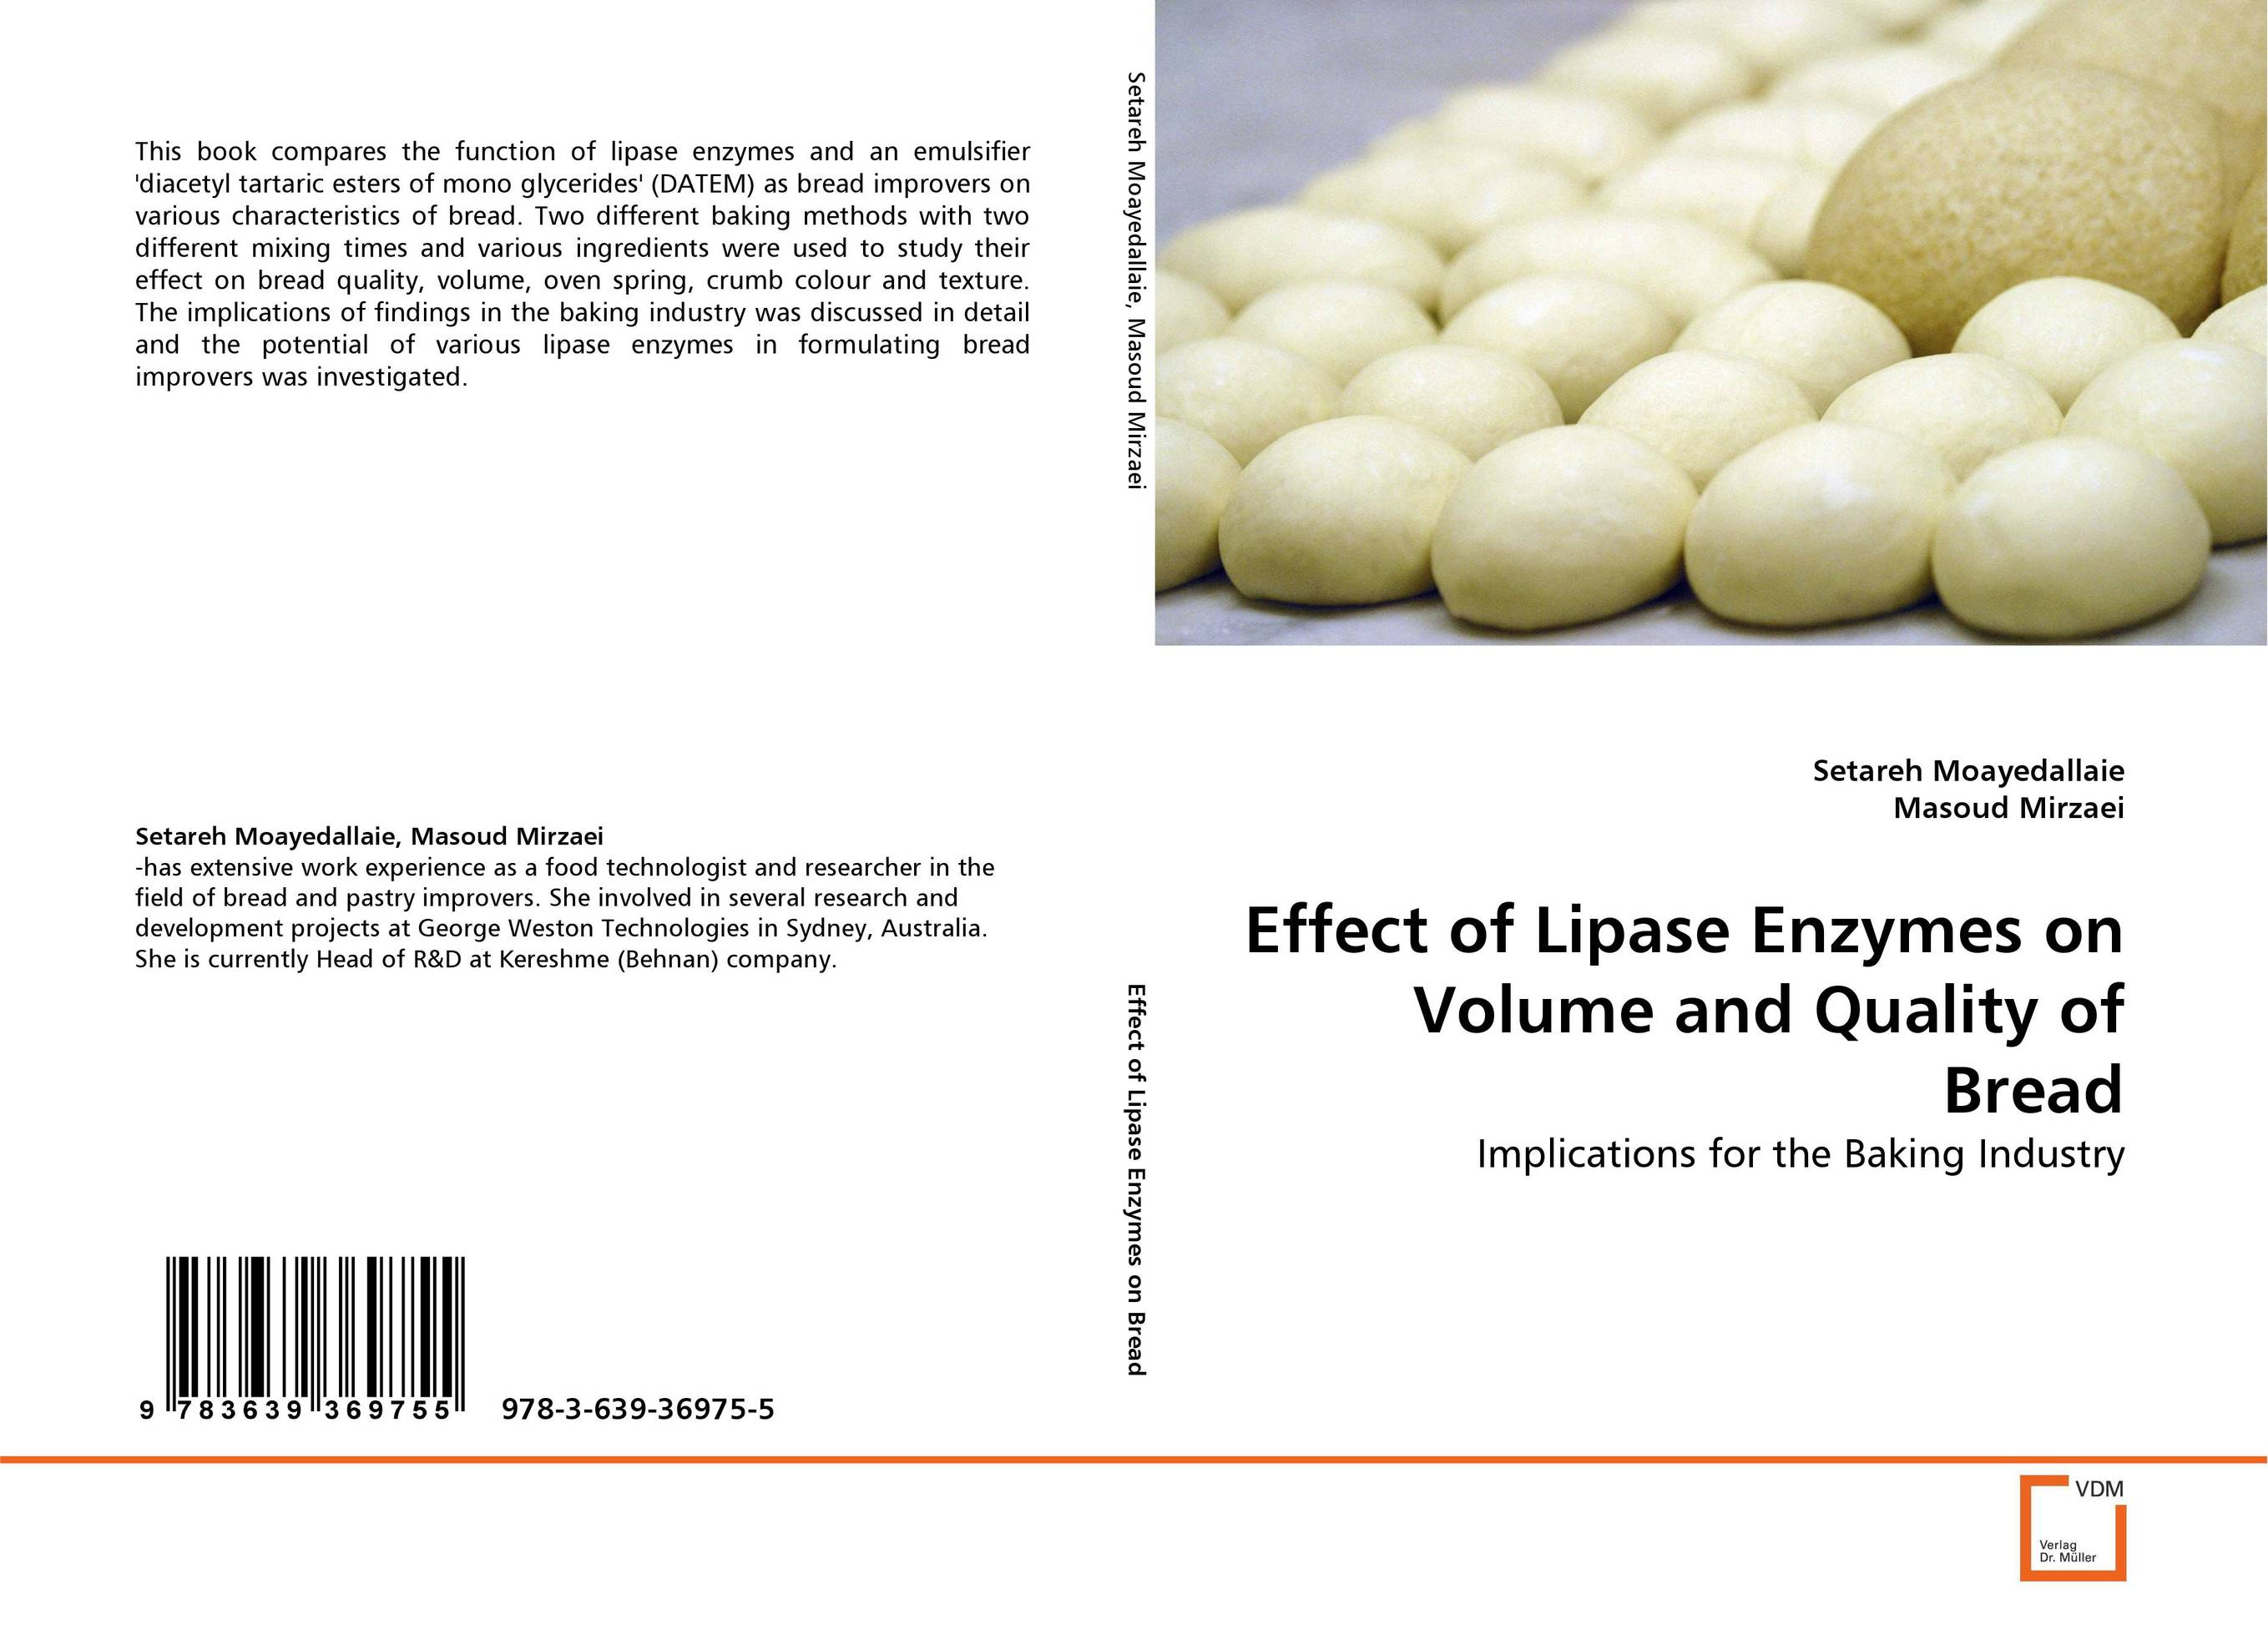 Effect of Lipase Enzymes on Volume and Quality of Bread baking school the bread ahead cookbook